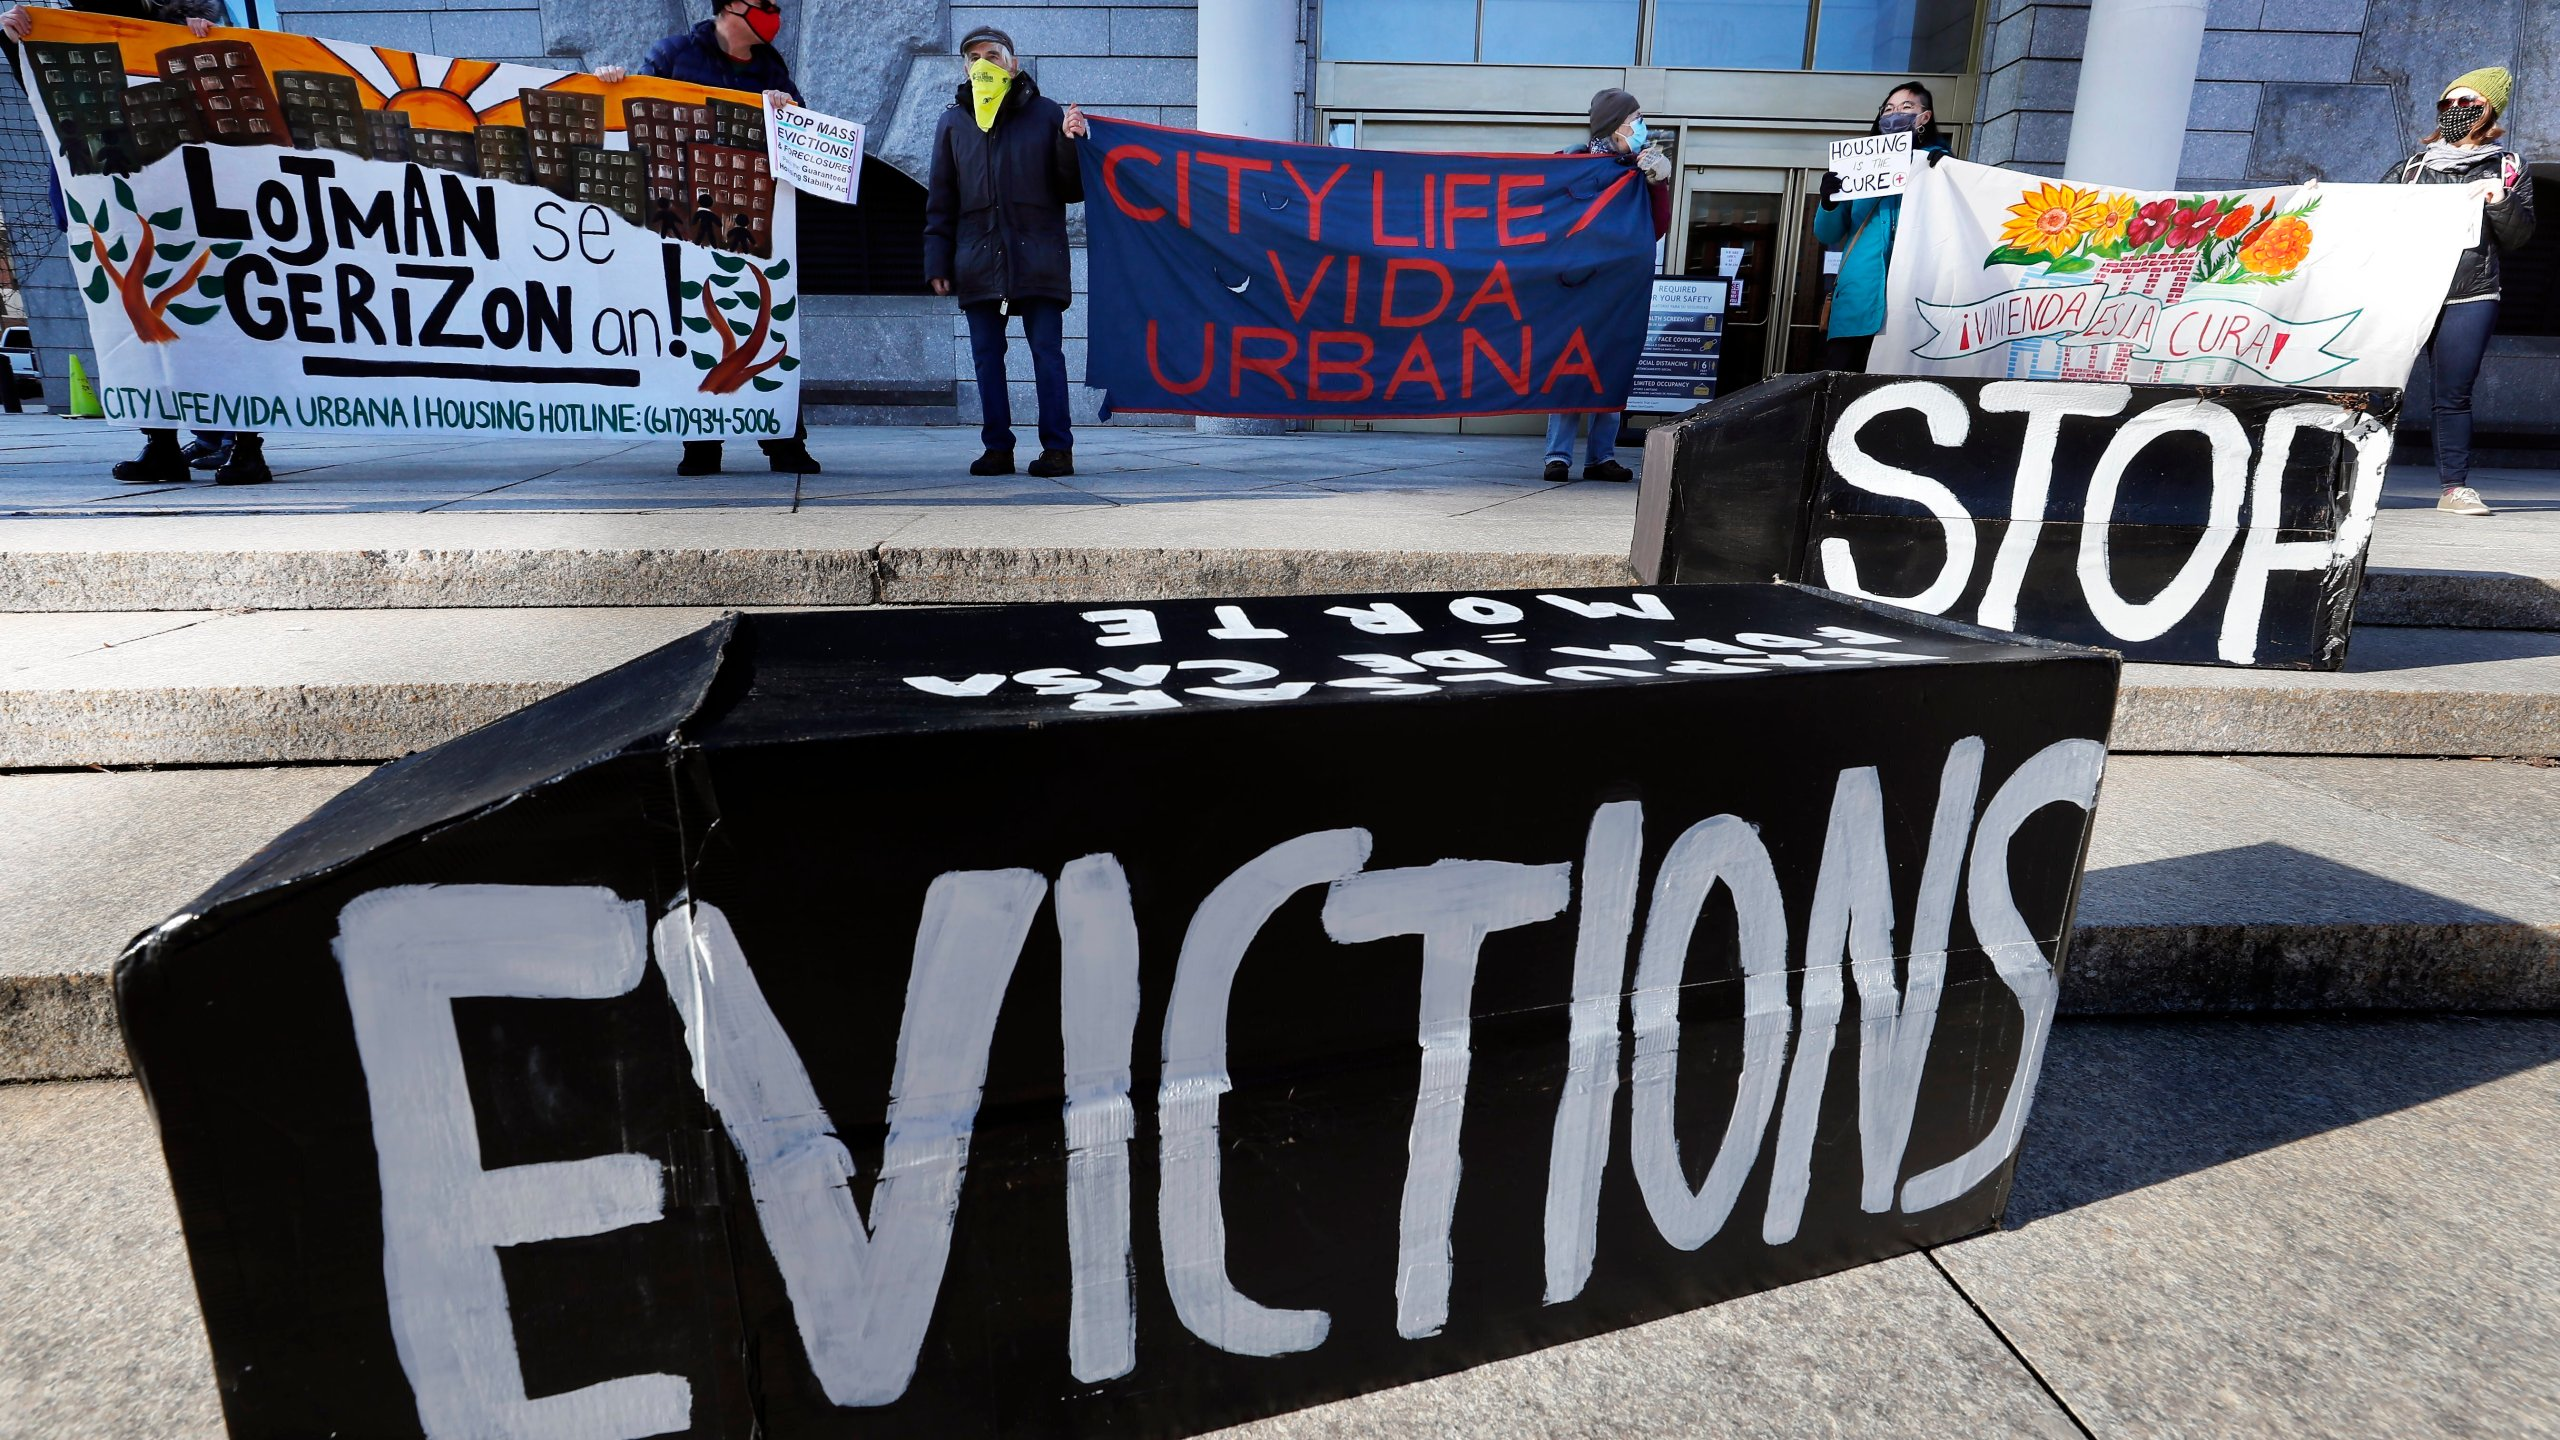 Judge temporarily stays ruling in eviction moratorium case